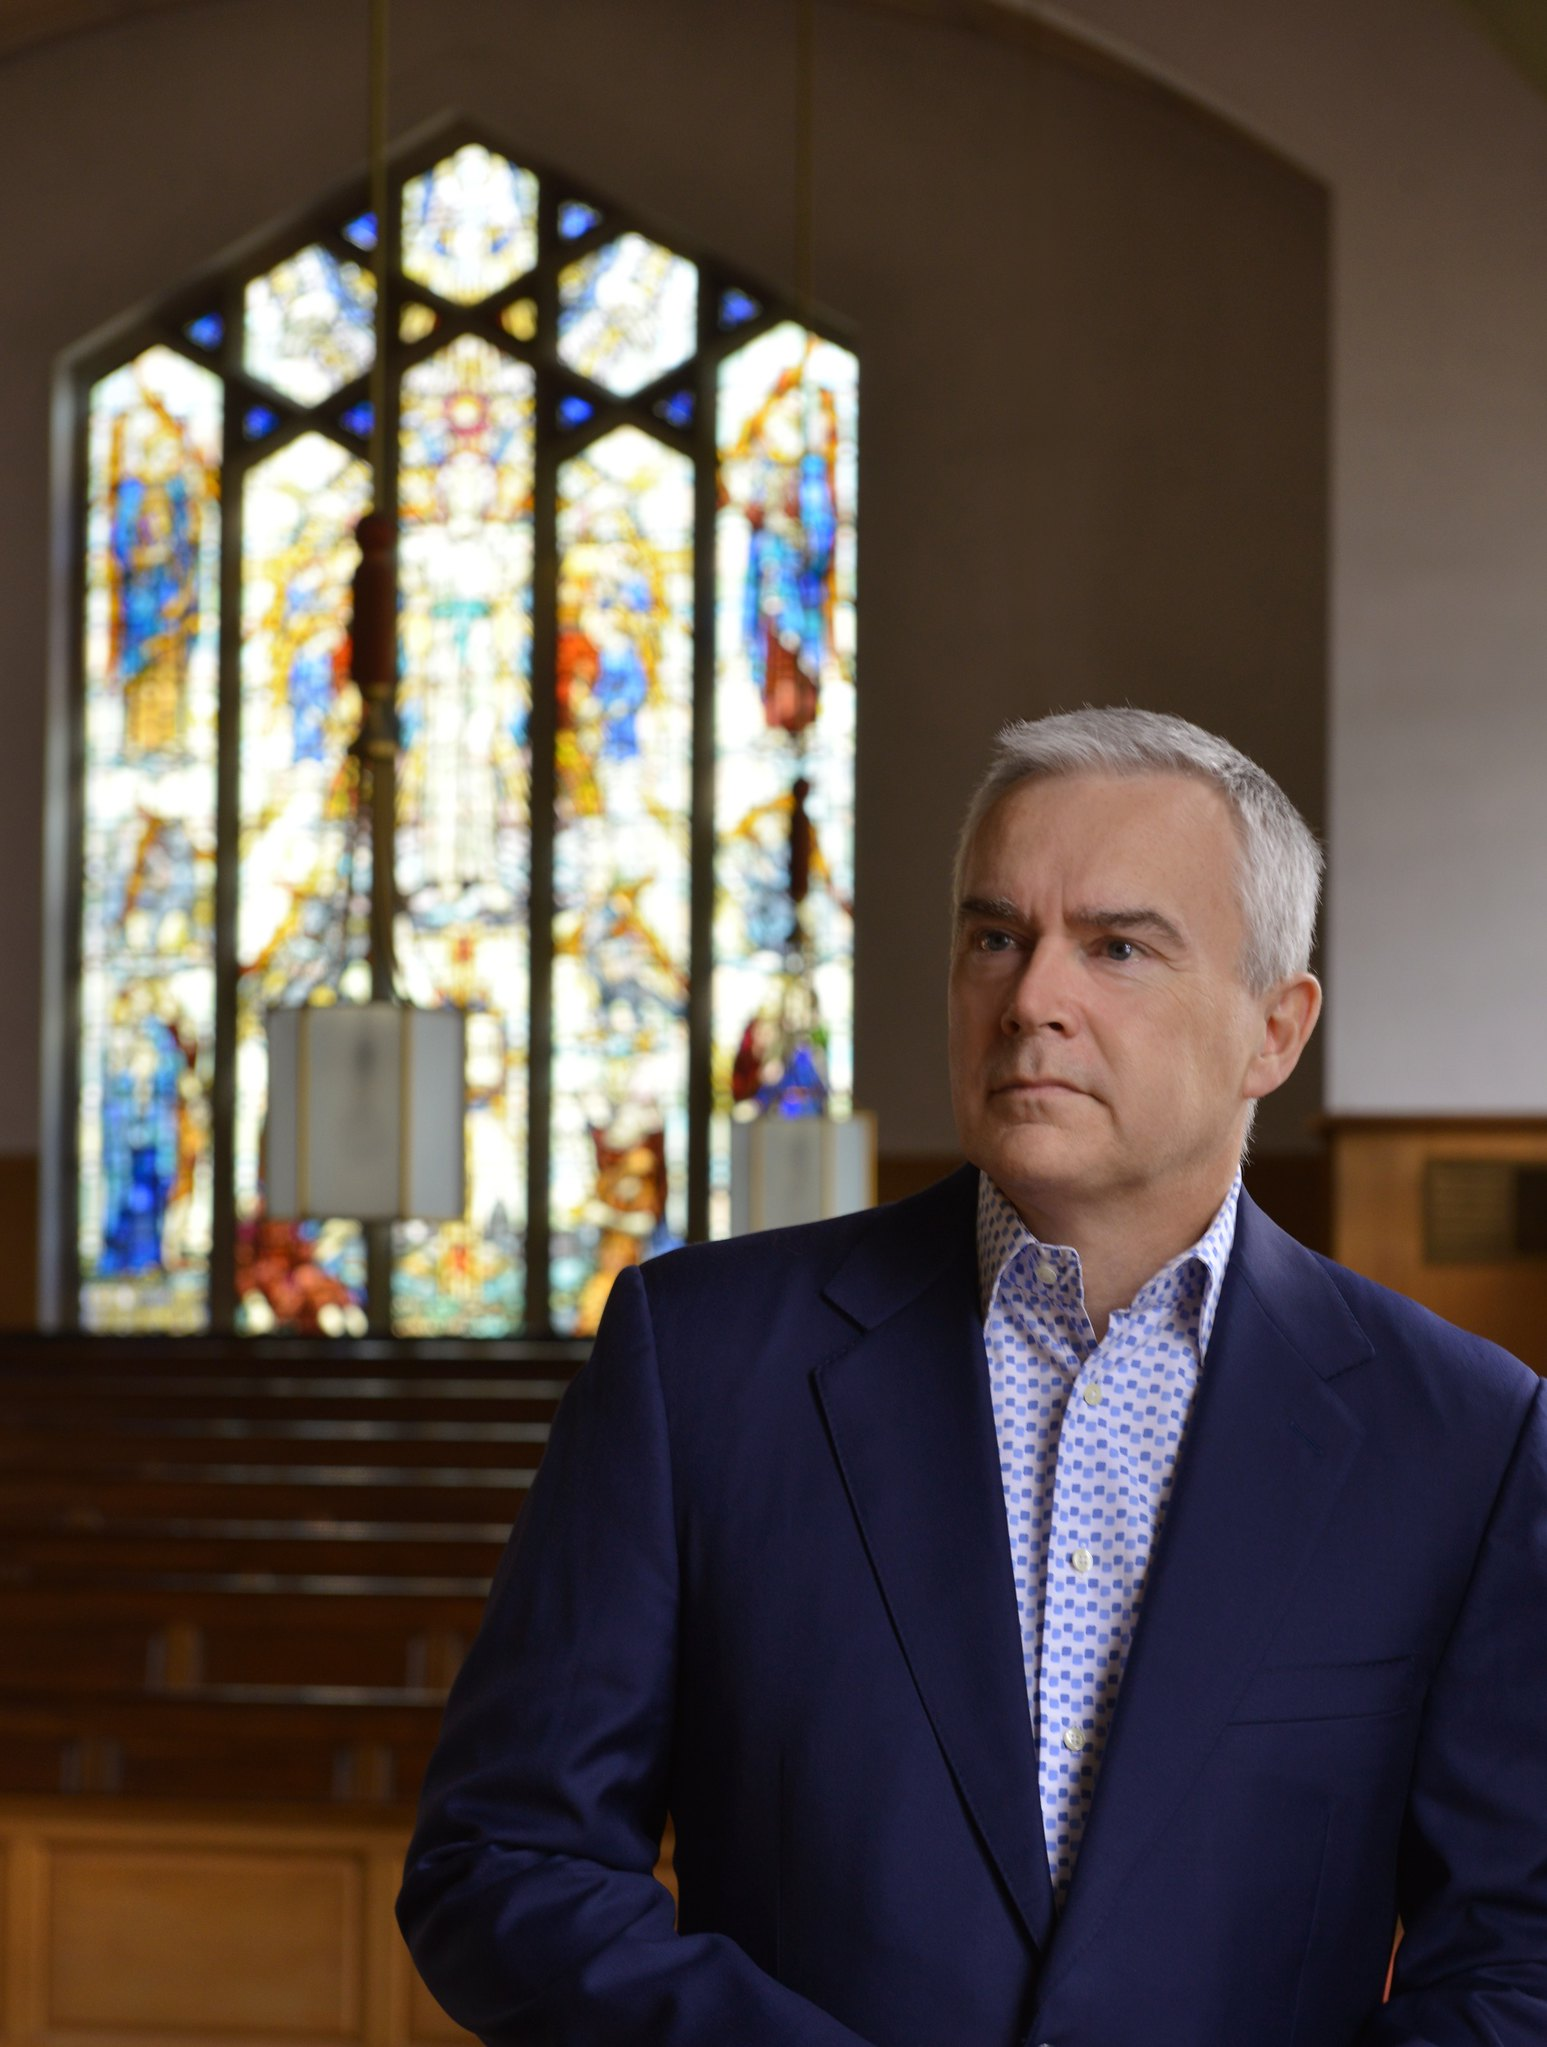 Huw Edwards is the vice president of The National Churches Trust